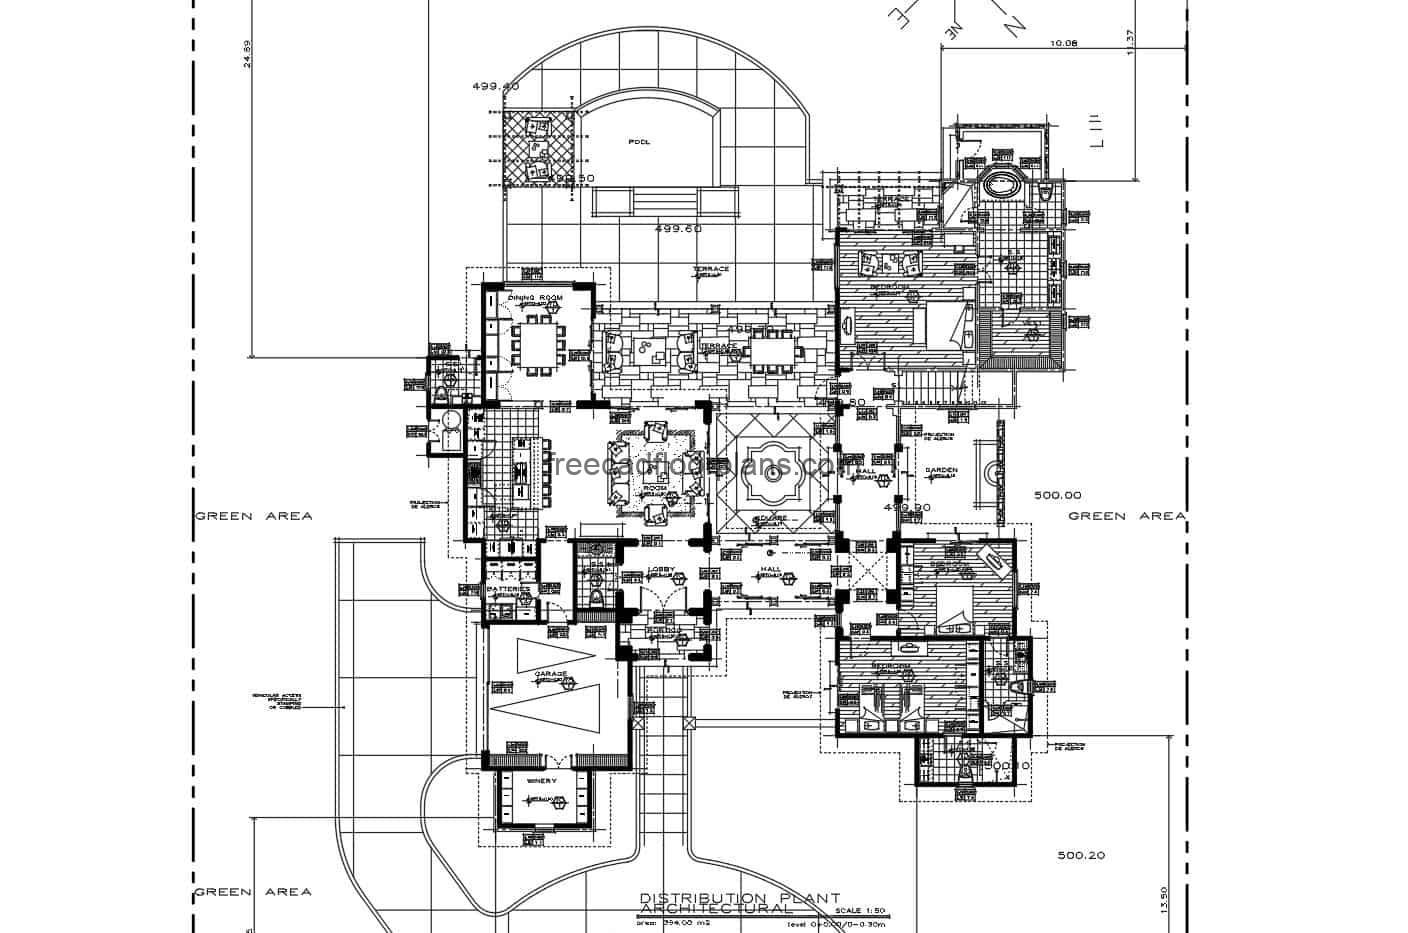 Large house with sloping roofs with several living rooms and family rooms, kitchen with breakfast area, dining area for 10 people, three large bedrooms, rear terrace and pool. Complete project plans for free download in Autocad DWG format.